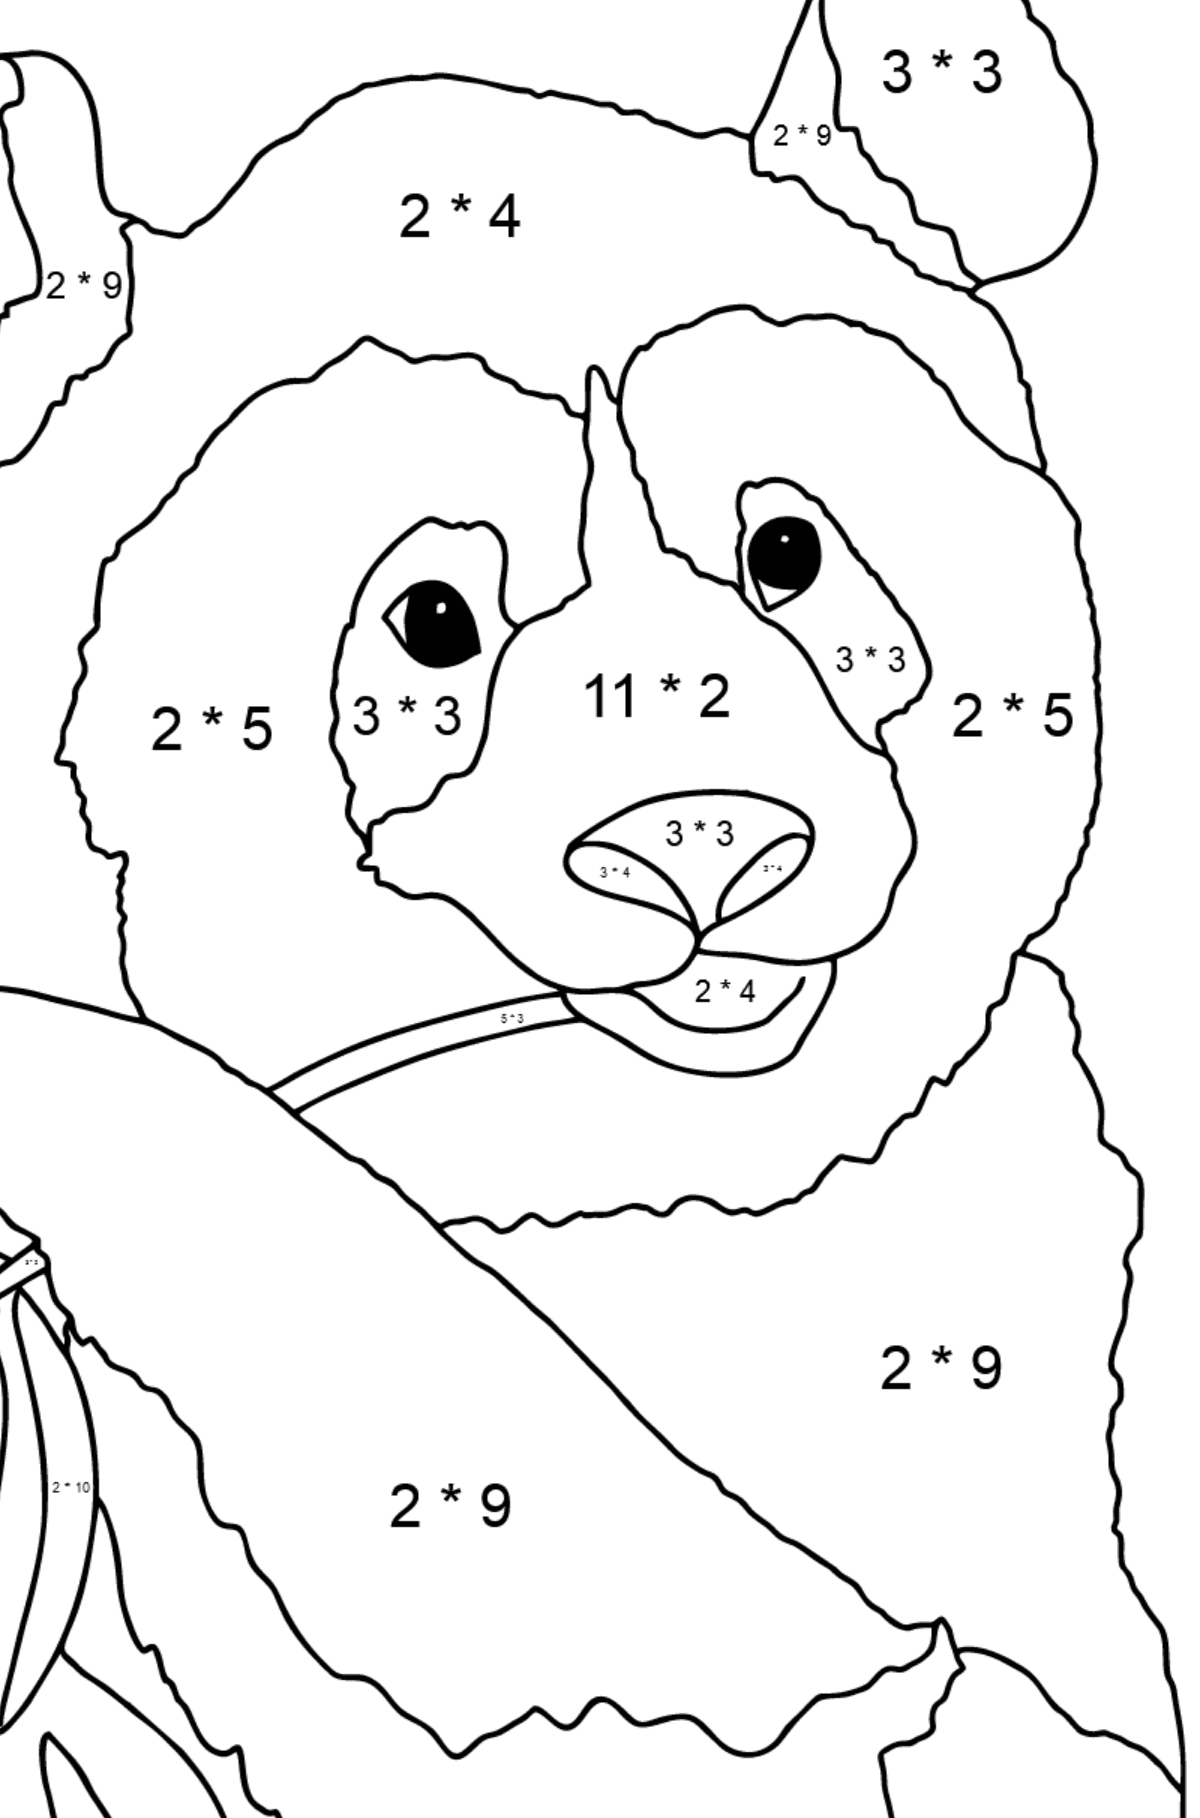 Coloring Page - A Panda is Eating Bamboo Stems and Leaves - Math Coloring - Multiplication for Children